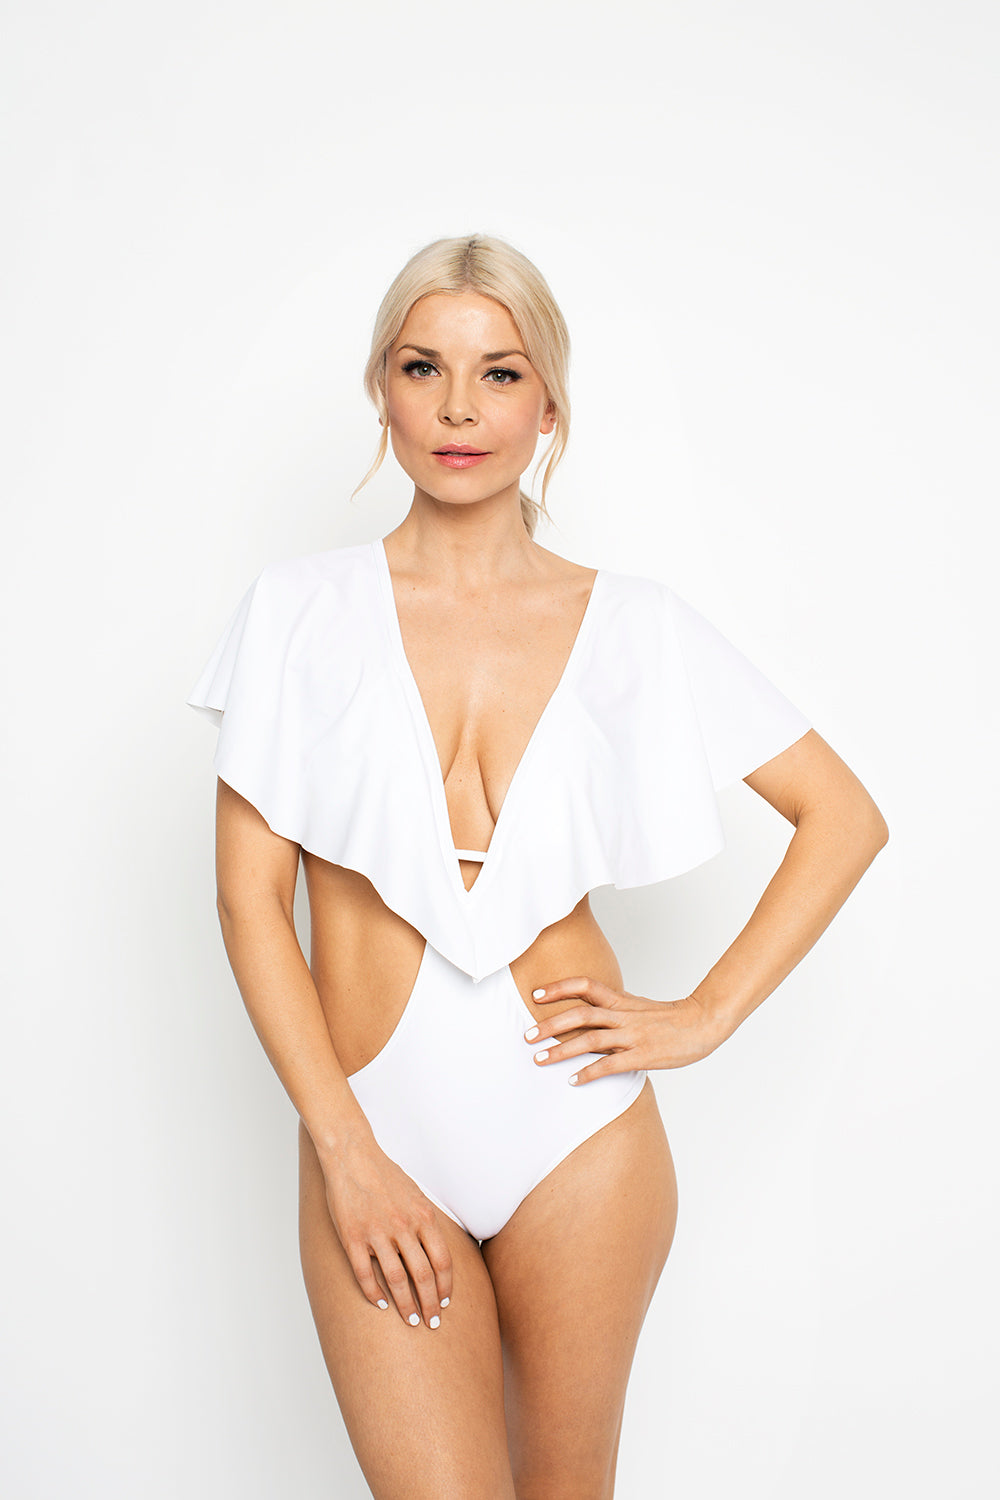 West Seventy Nine - Skychaser Caped Monokini - White WSN0004-W-F